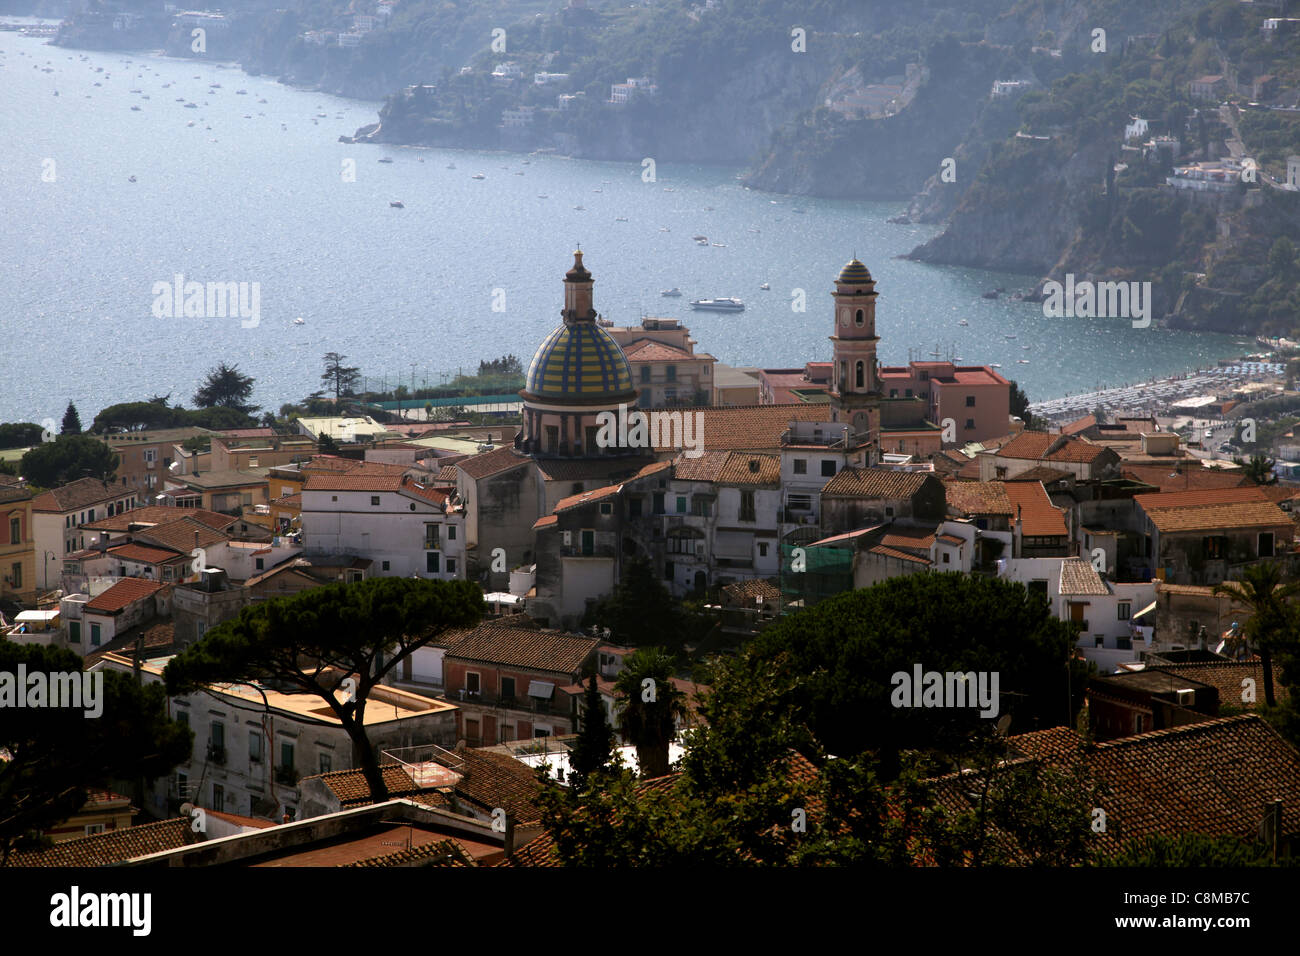 THE HOLY CHURCH OF GIOVANNI BATTISTA VIETRI SUL MARE ITALY 18 September 2011 Stock Photo